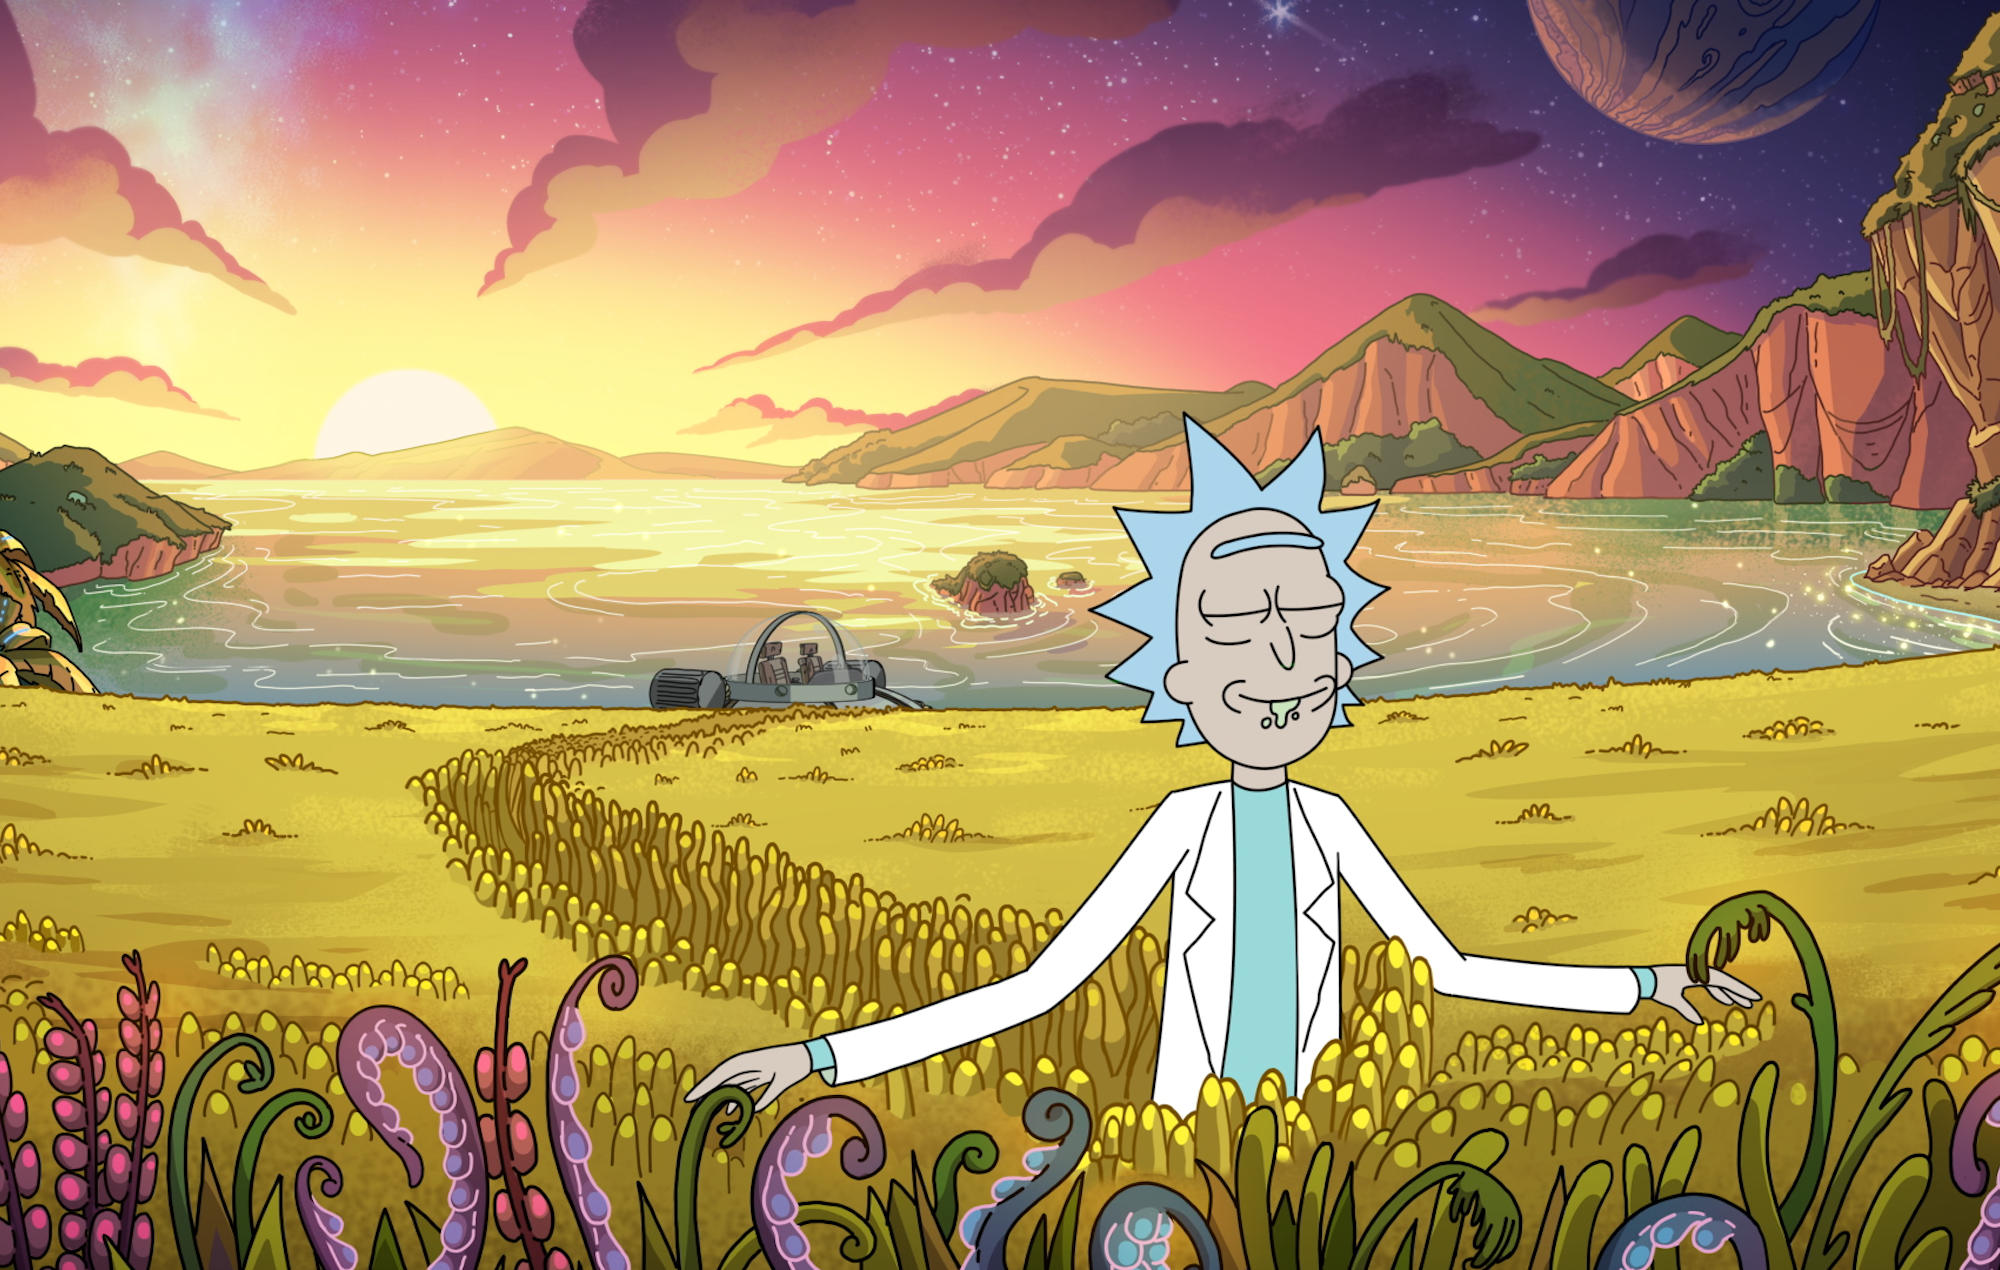 Season 4 of 'Rick and Morty' to come to the UK in early 2020